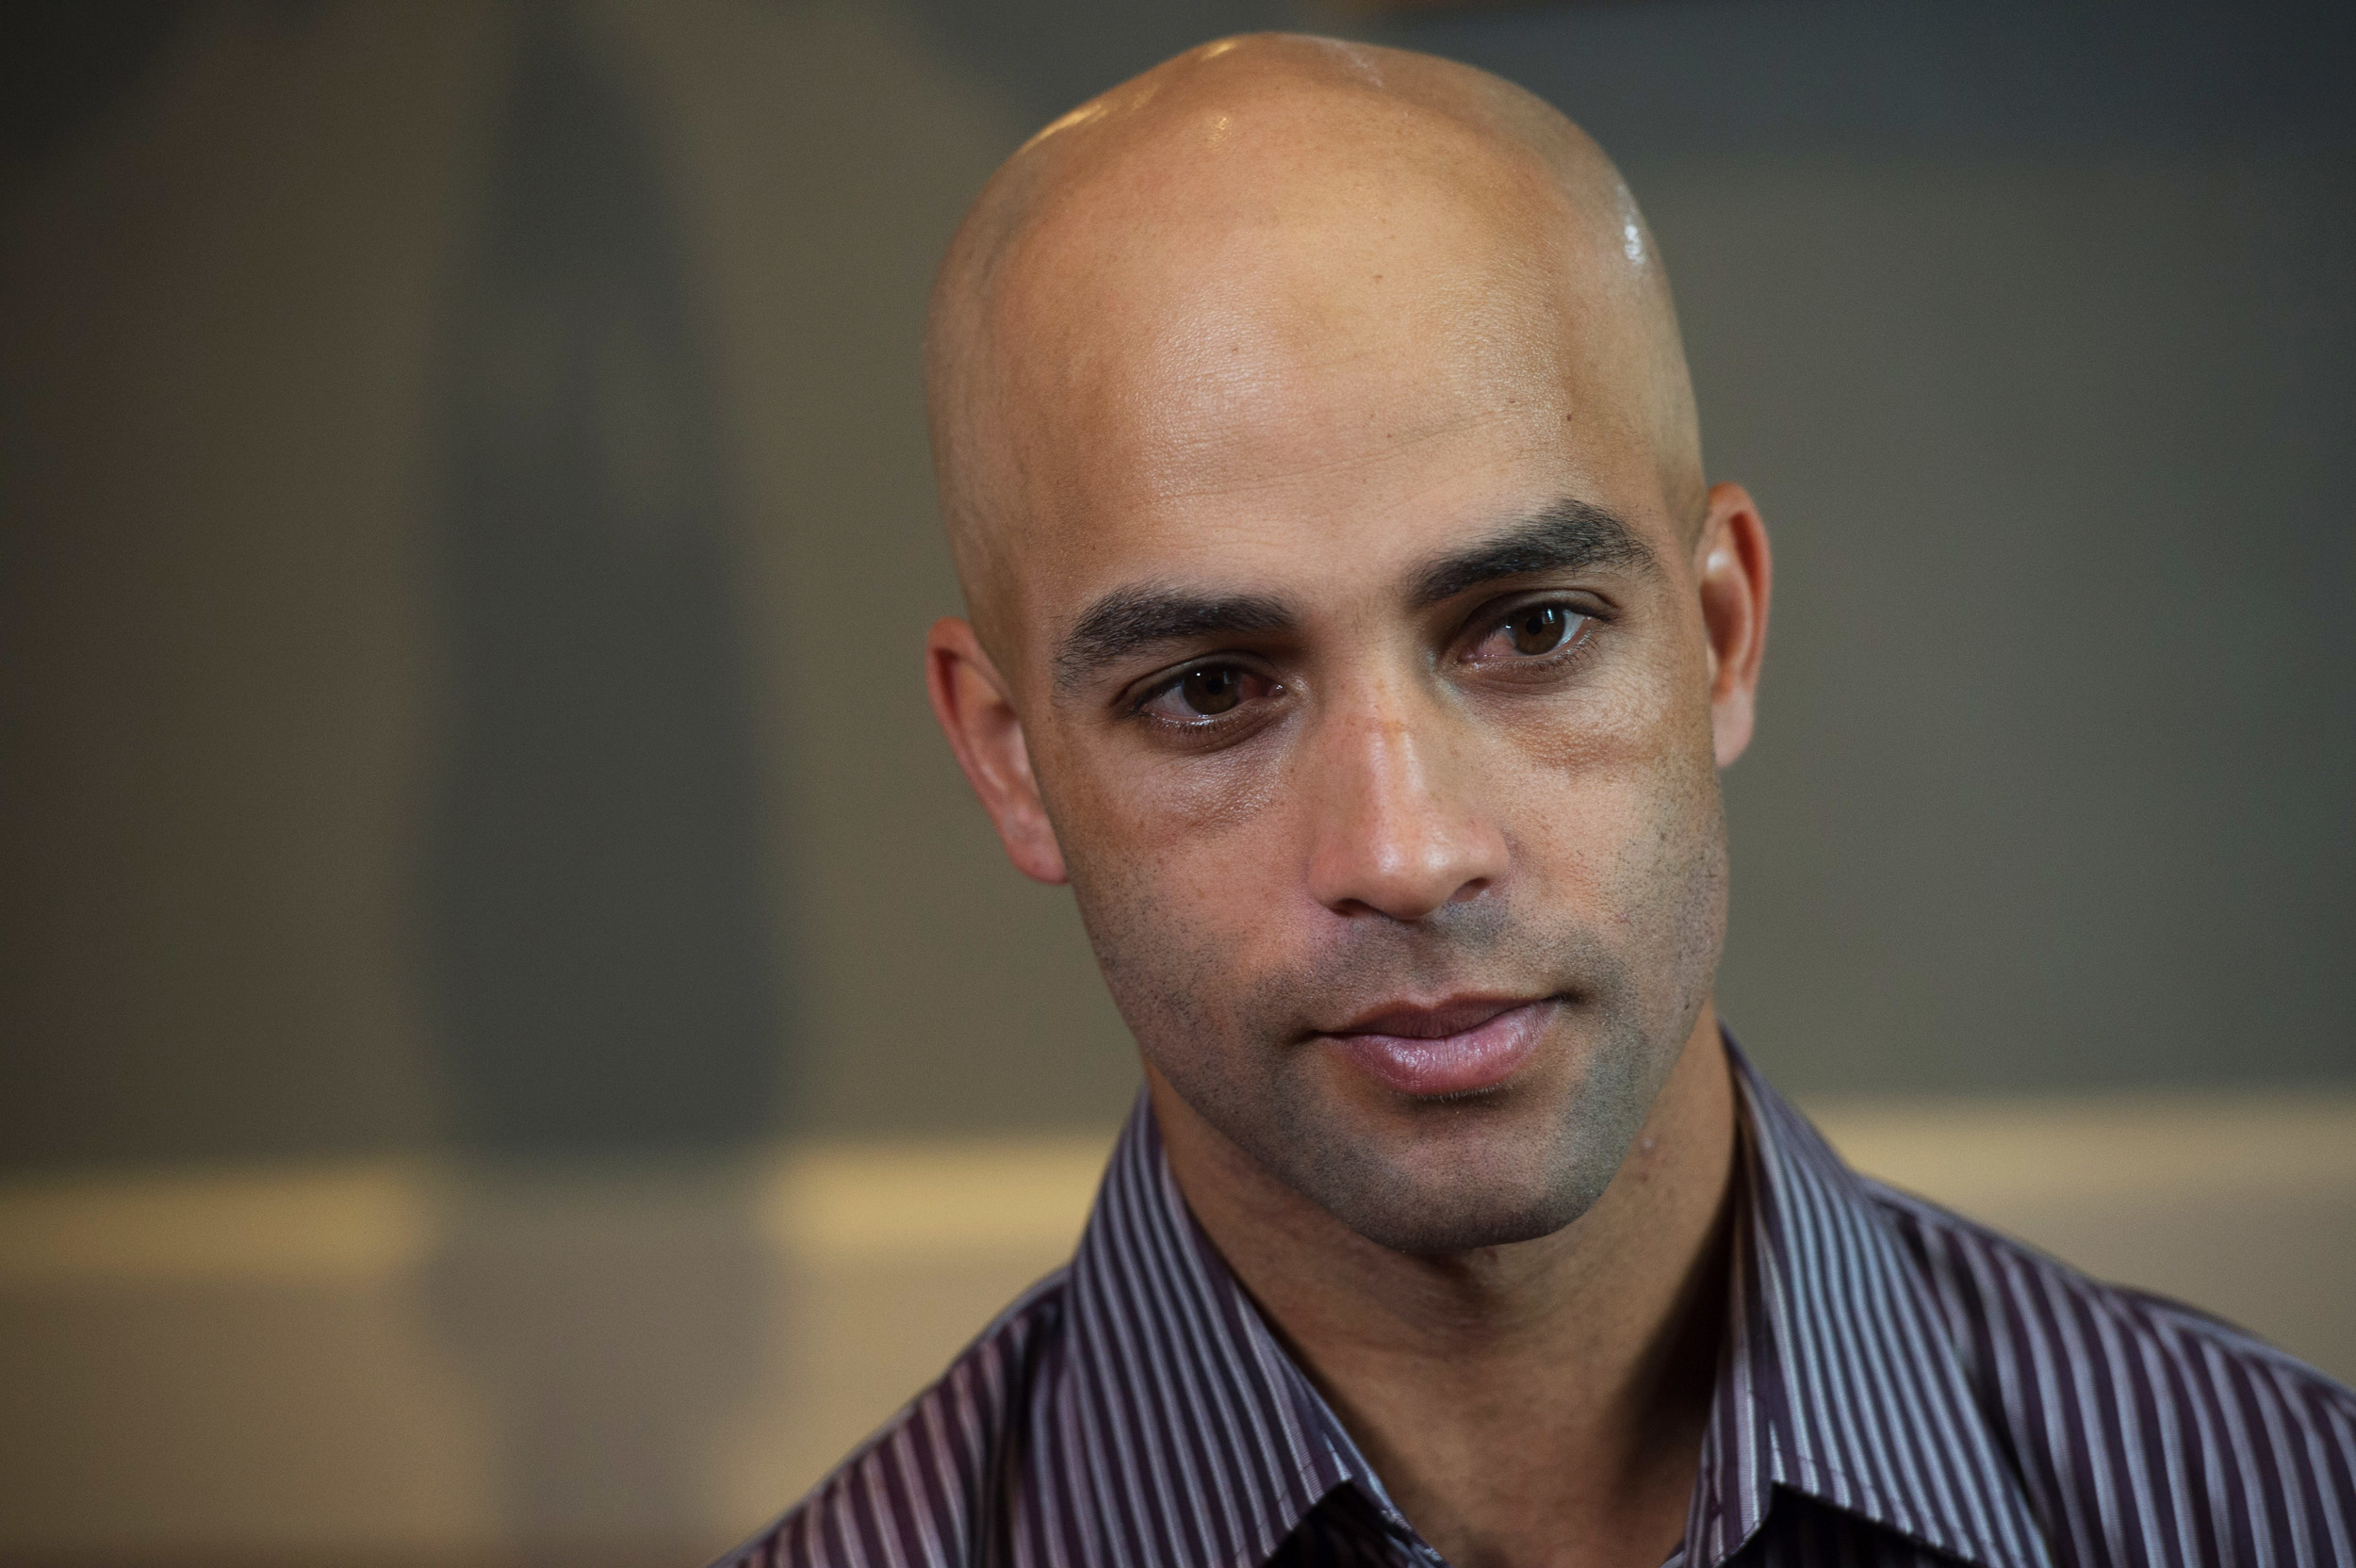 Former tennis star James Blake discusses his mistaken arrest by the New York City Police Department during an interview, Saturday, Sept. 12, 2015, in New York. Video surveillance released Friday of the mistaken arrest shows a plainclothes police officer who has a history of excessive-force complaints grabbing Blake by the arm and tackling him to the ground. (Bryan R. Smith/AP)